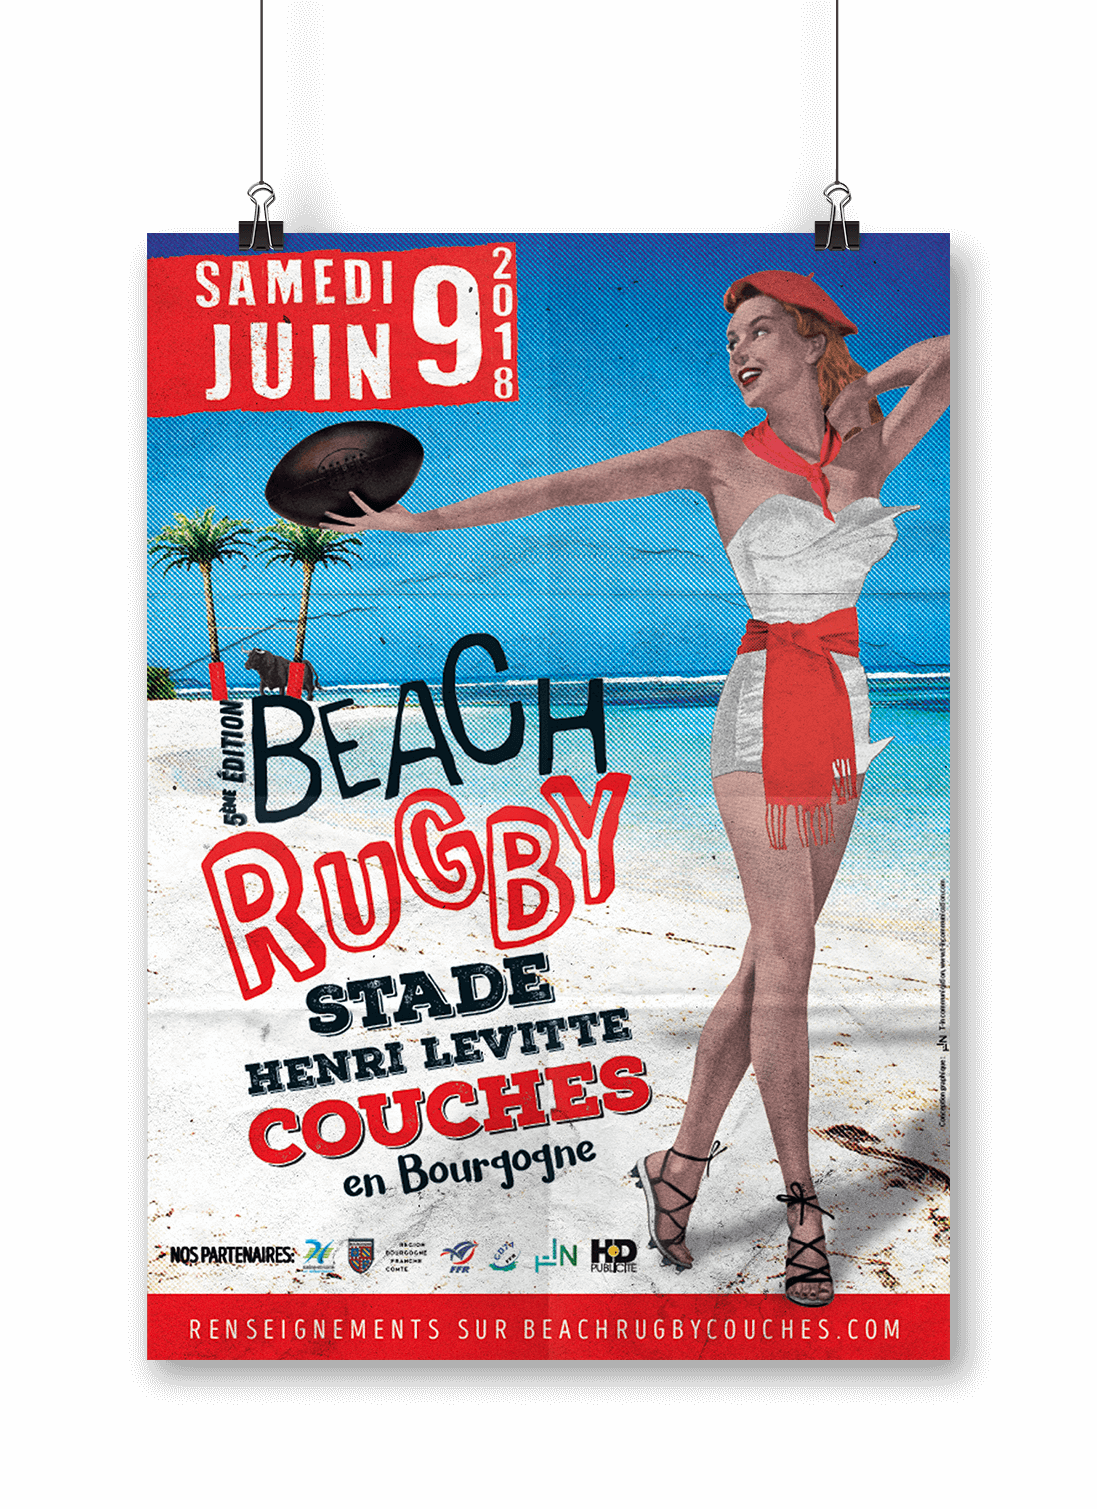 Mock up de beach rugby